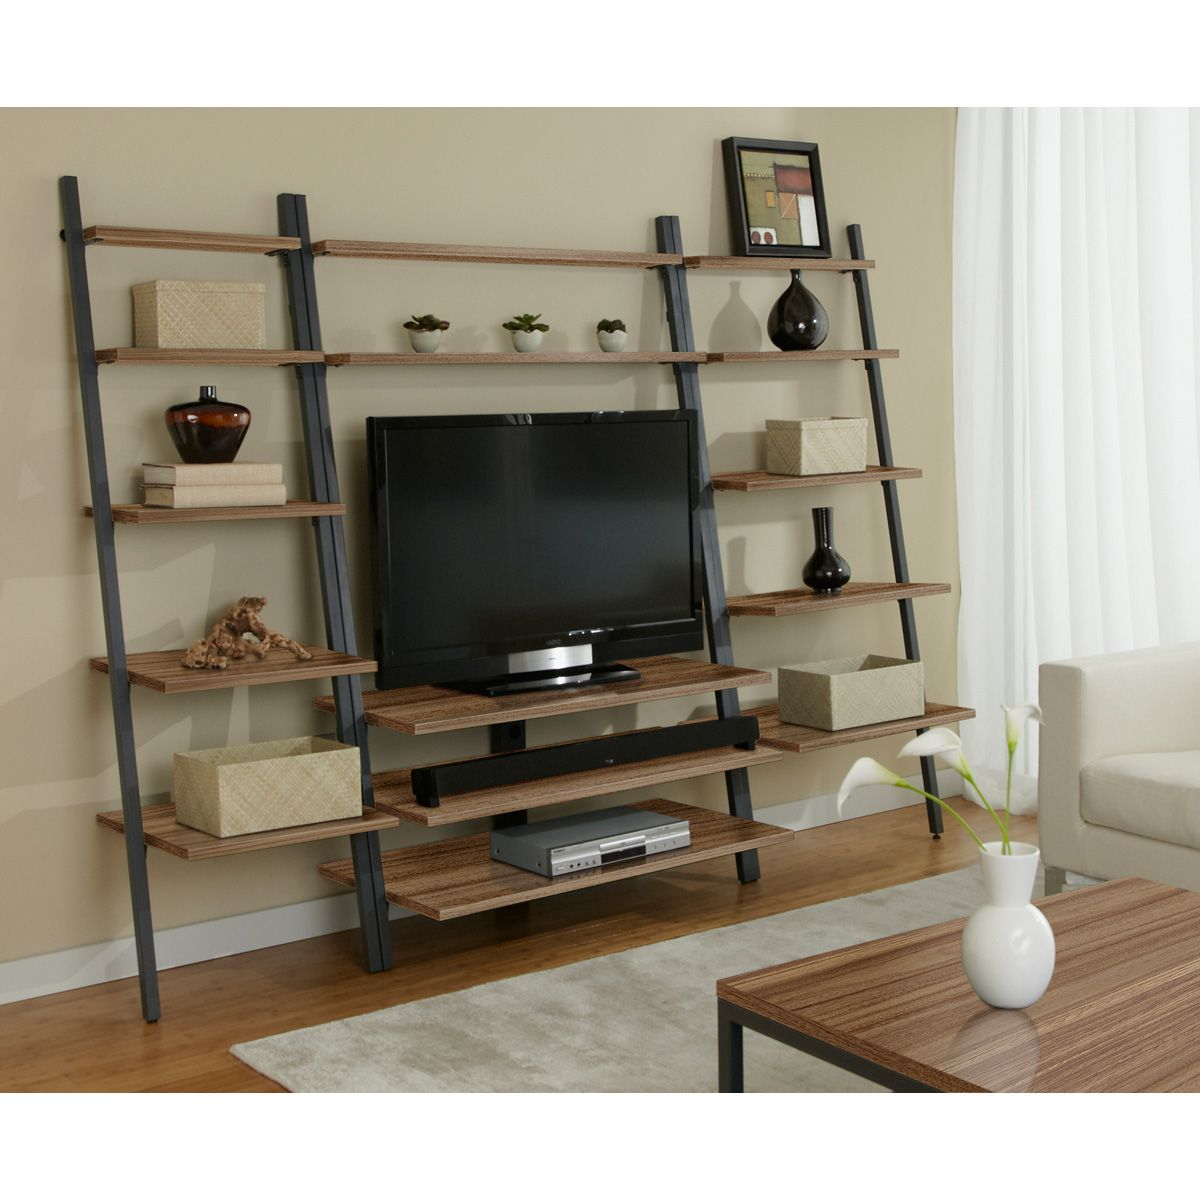 Parson collection ladder tv wall system do you like this